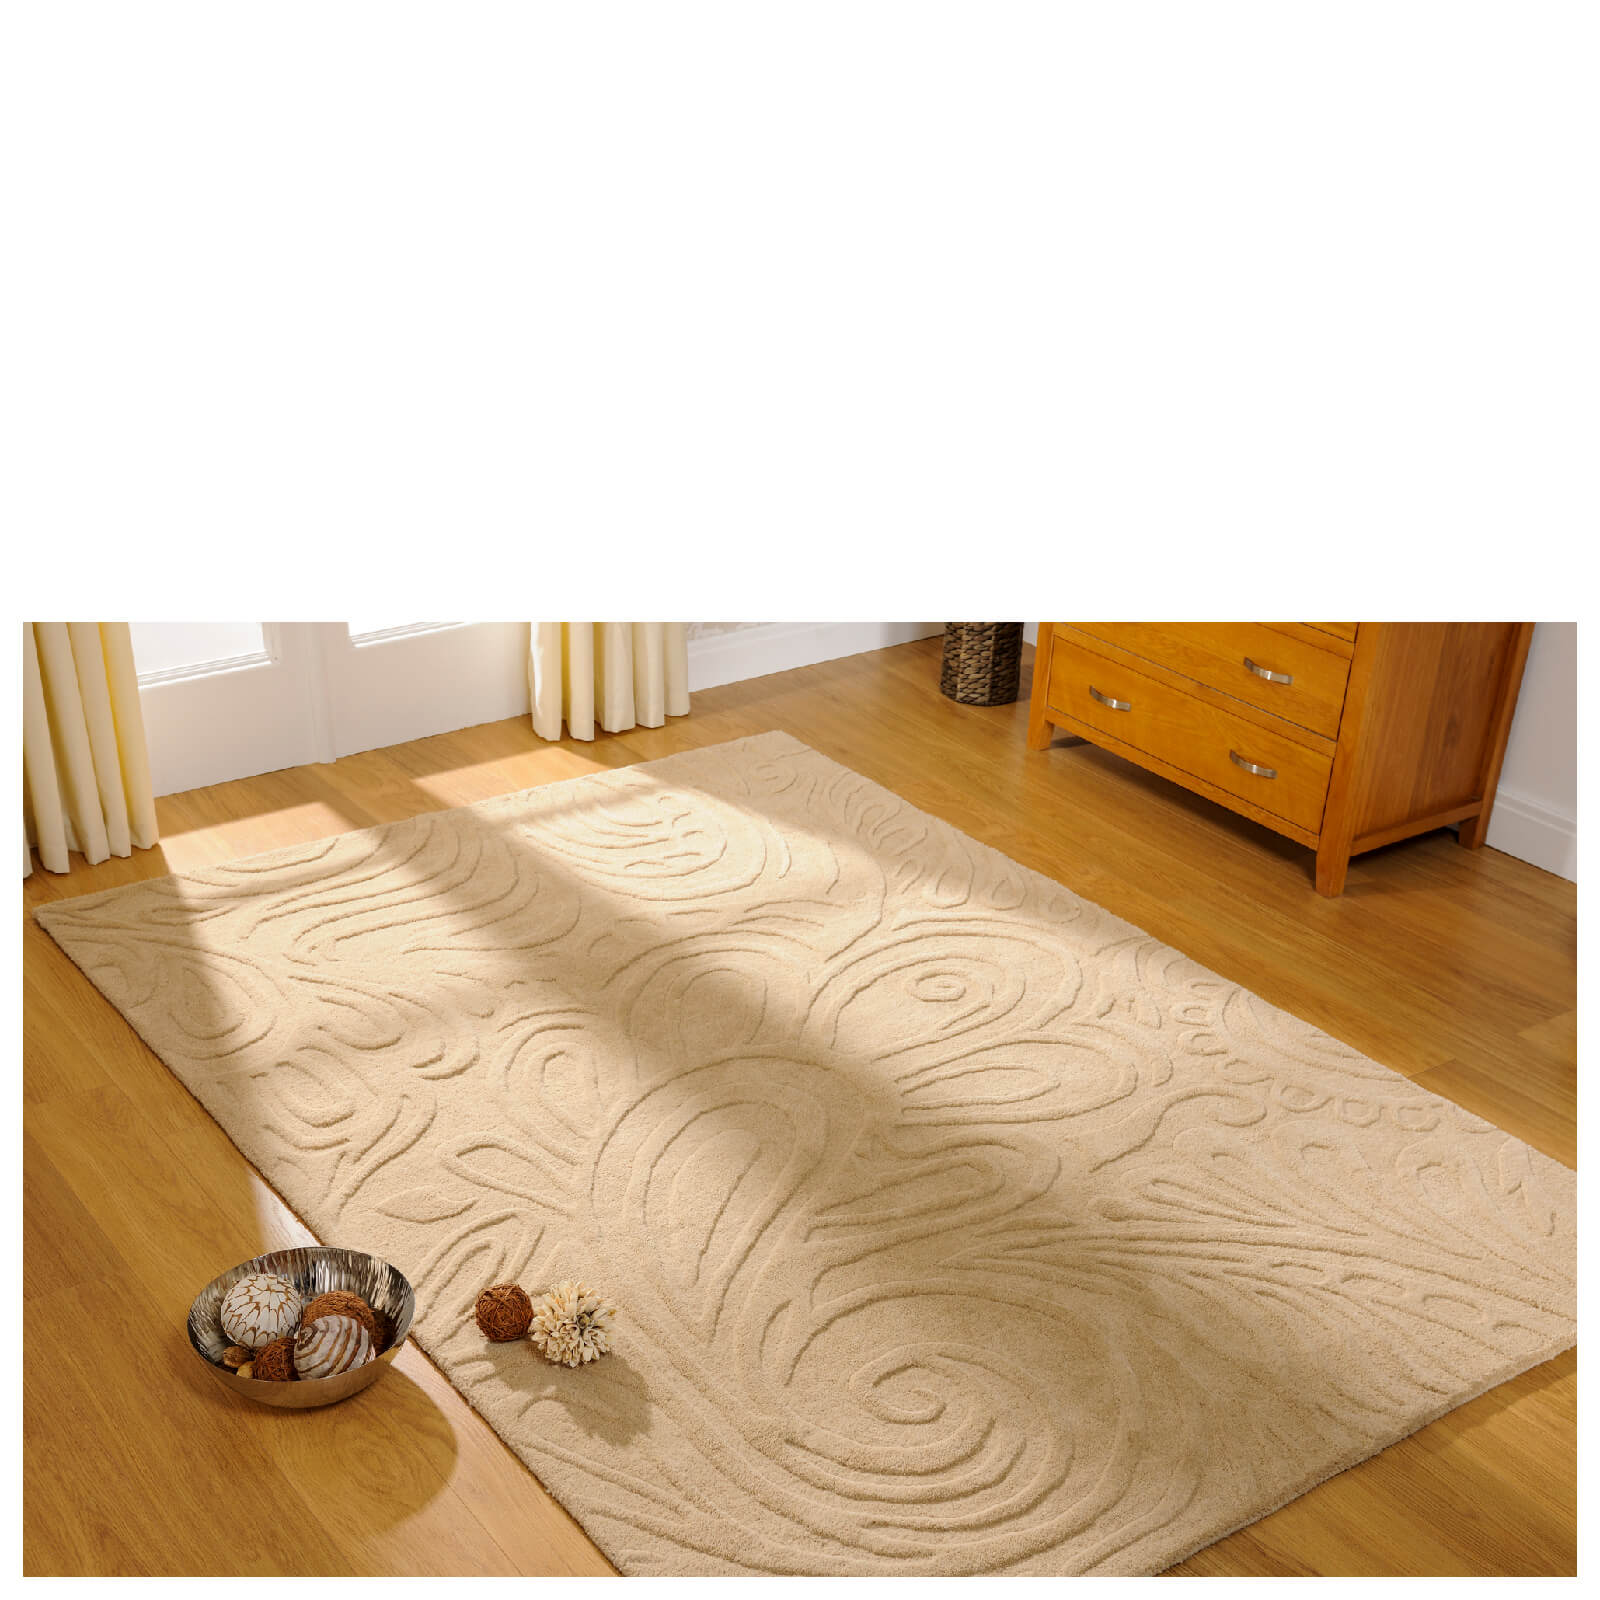 Flair Relief Paisley Rug - Cream